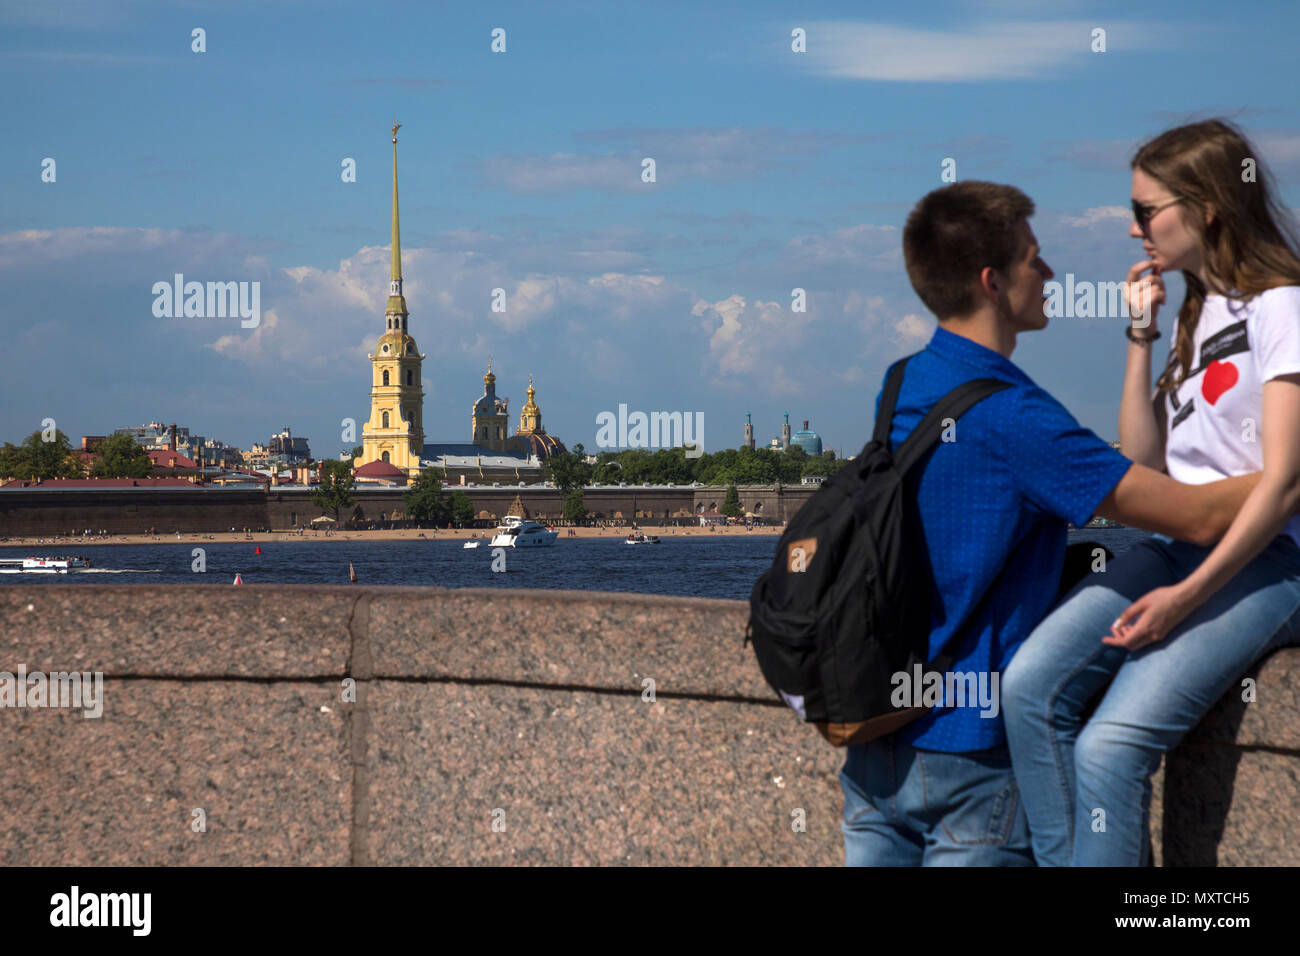 Summer view from the Palace Bridge to the Peter and Paul Fortress and the Neva River in the city center of St. Petersburg, Russia - Stock Image